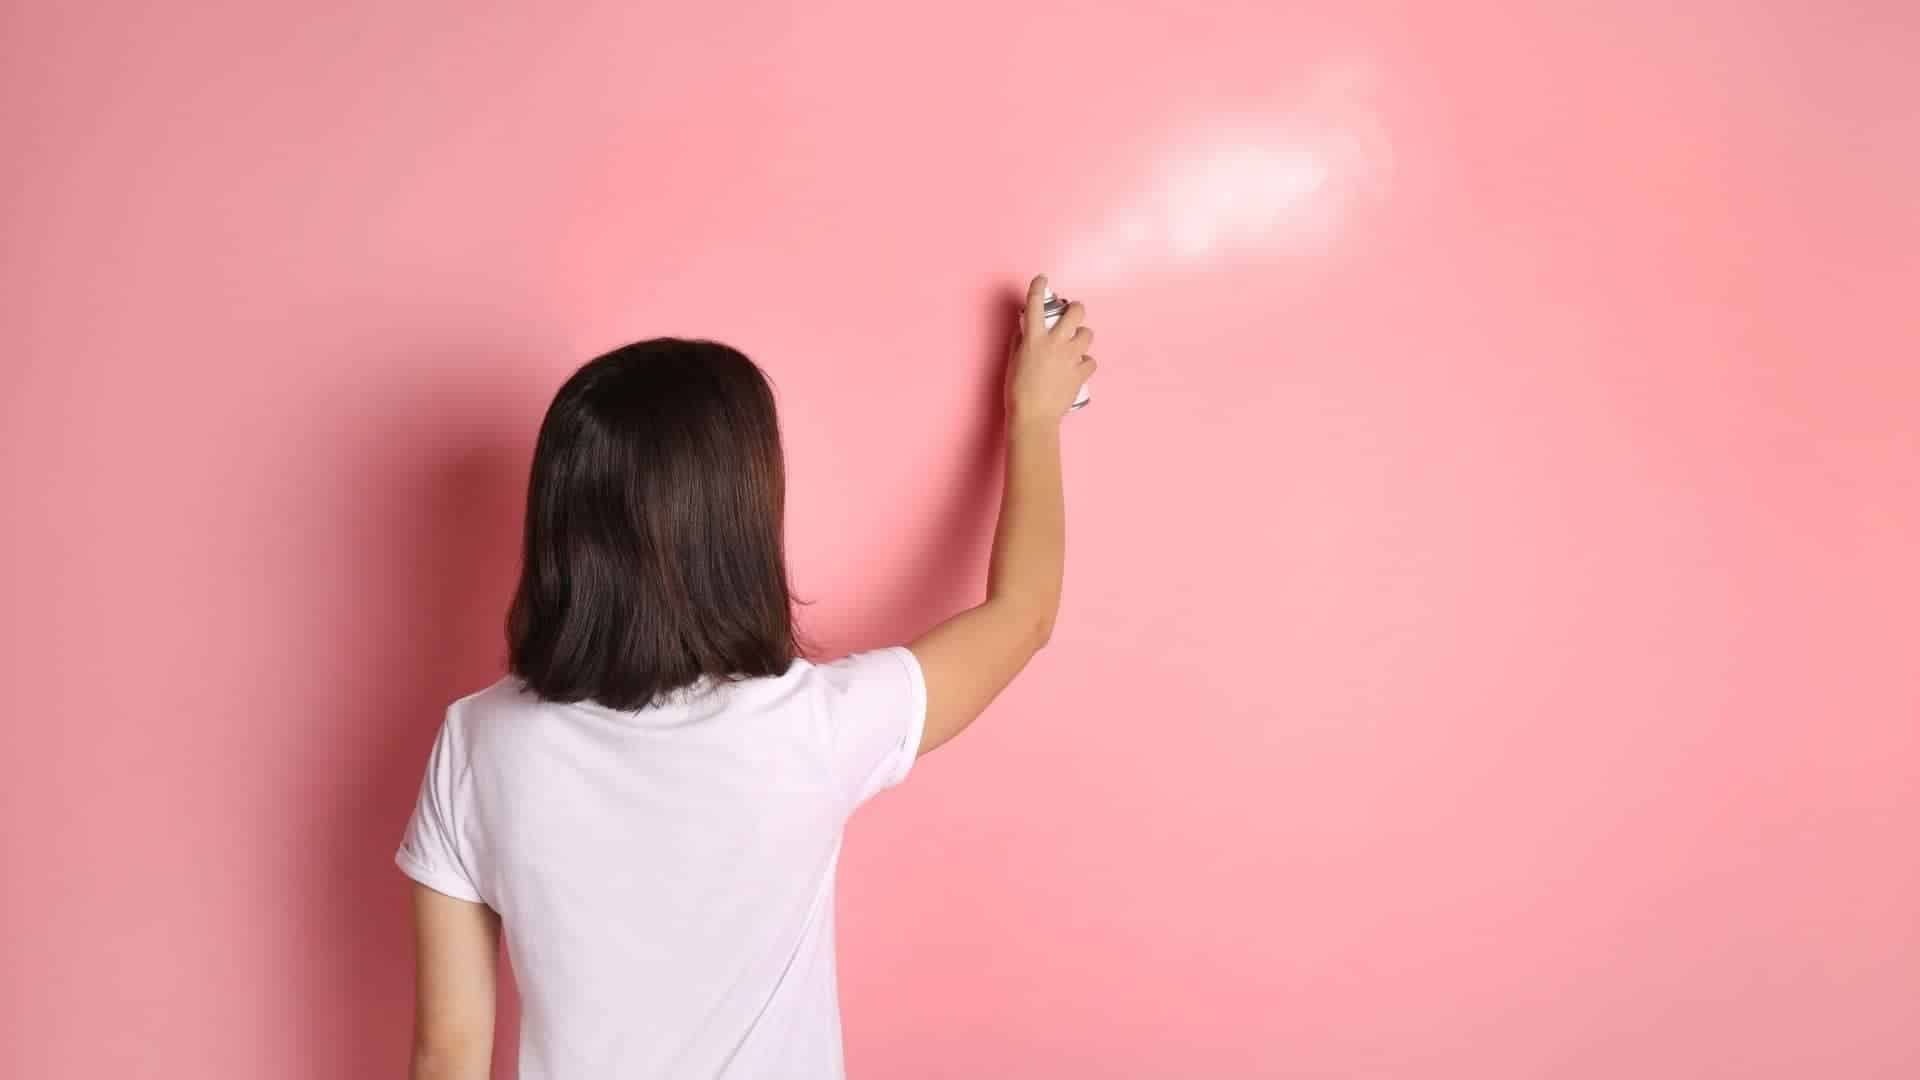 How To Make Spray Paint Not Sticky